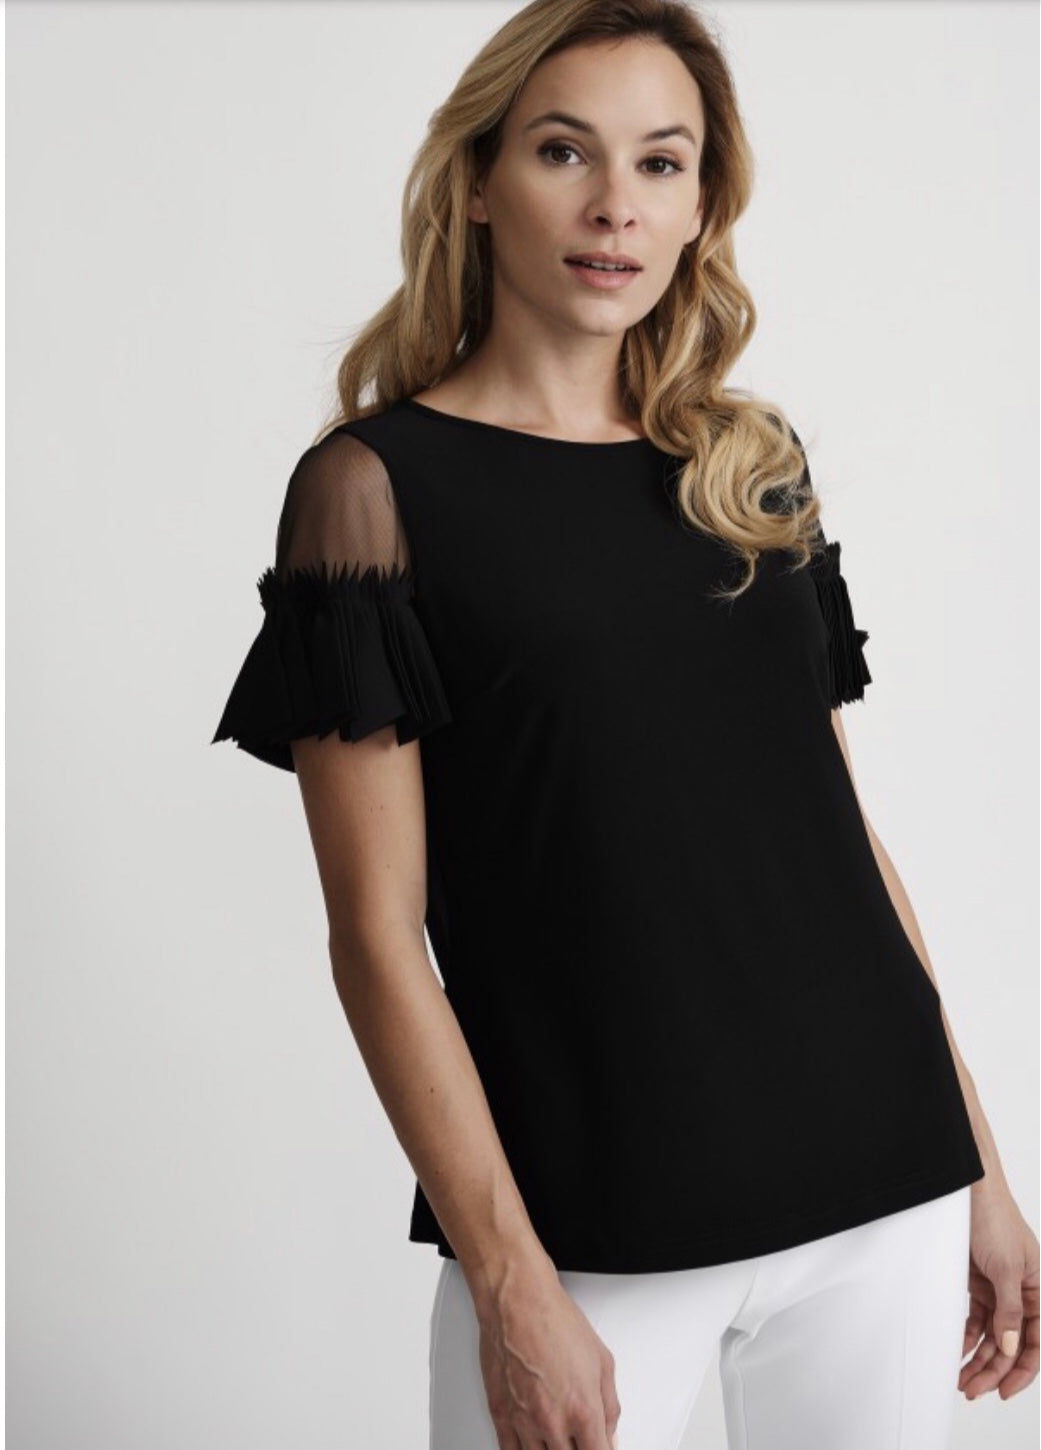 black top with sheer shoulder cut outs